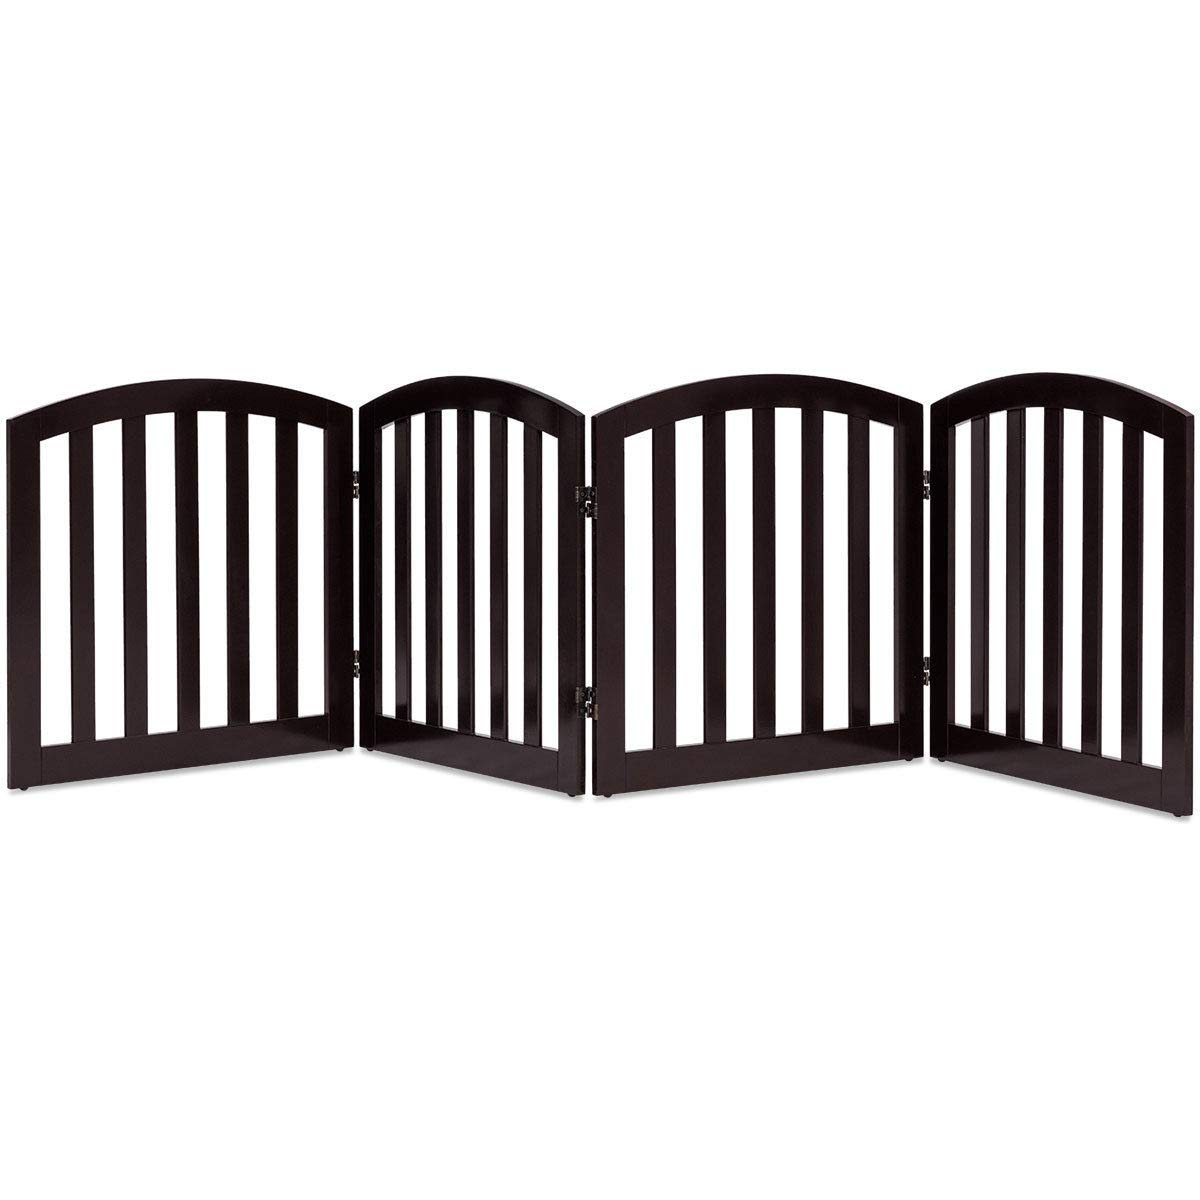 Giantex 24 Dog Gate with Arched Top Configurable Free Standing Wooden Gate with Foldable Panels and Sturdy Metal Hinges Pet Dog Safety Fence for Indoor Use